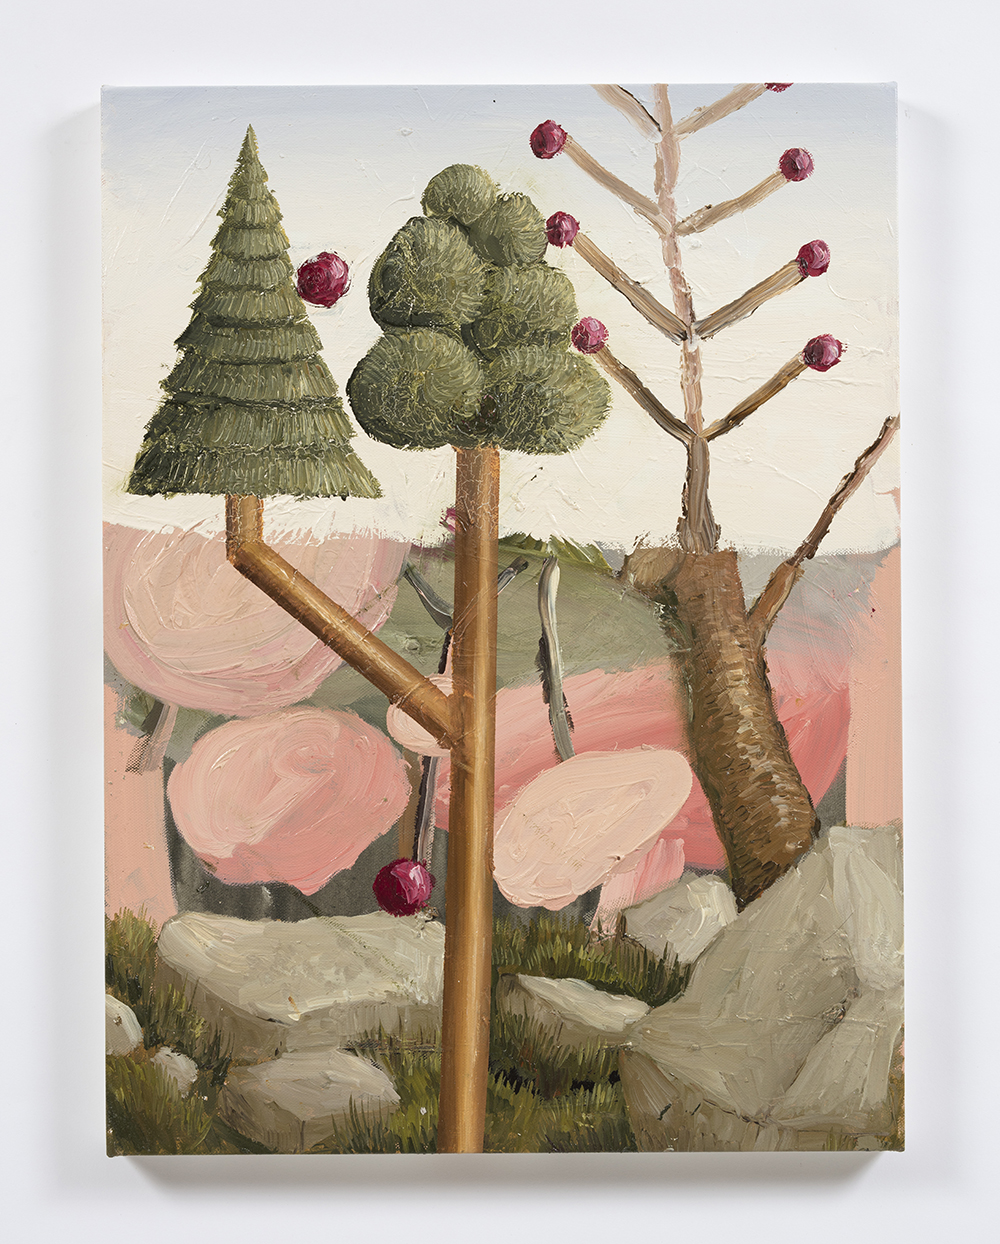 Siro Cugusi. <em>Forest VIII</em>, 2019. Oil on canvas, 27 1/2 x 19 5/8 inches (70 x 50 cm)